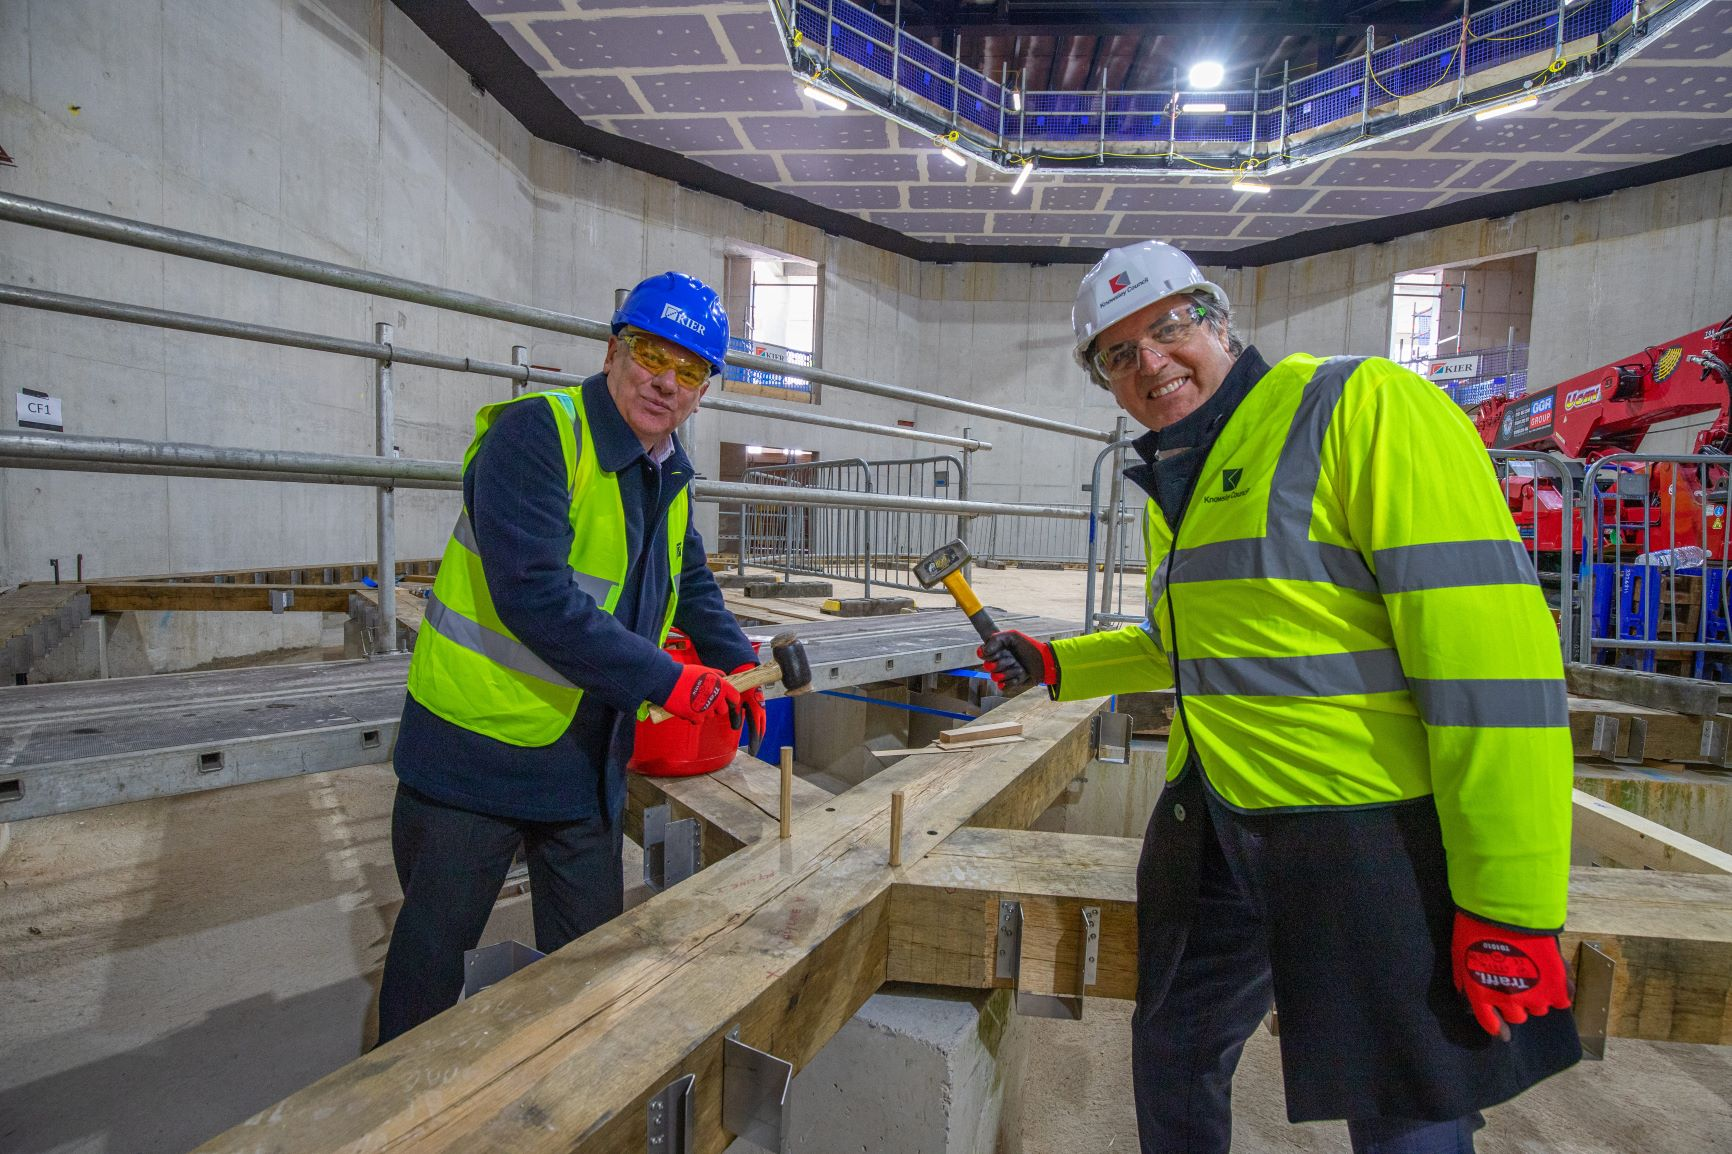 Cllr Graham Morgan and Metro Mayor Steve Rotheram at the Shakespeare North Playhouse site.